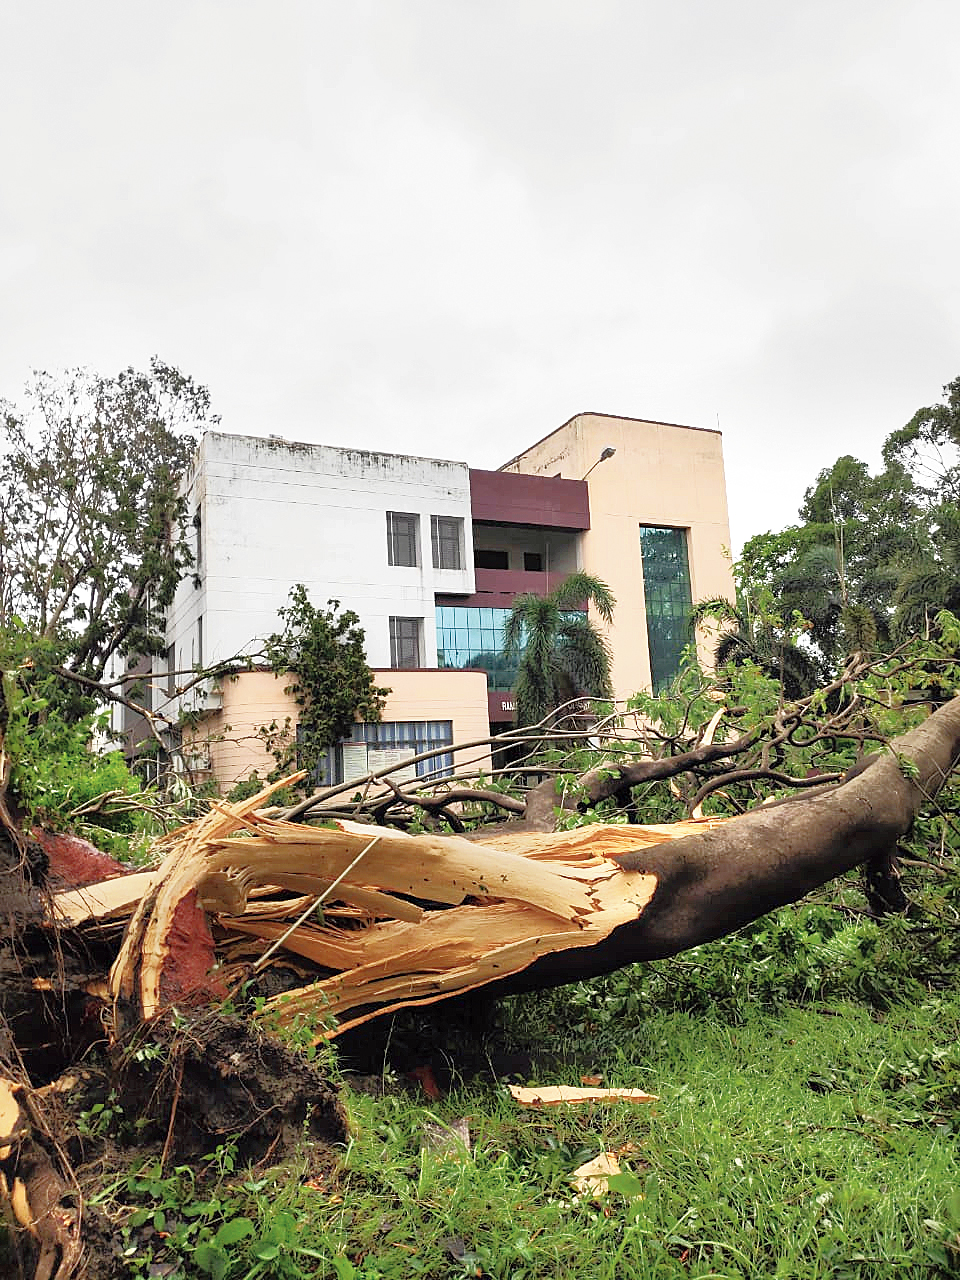 An official of the institute said some of the uprooted trees were more than 150 years old.